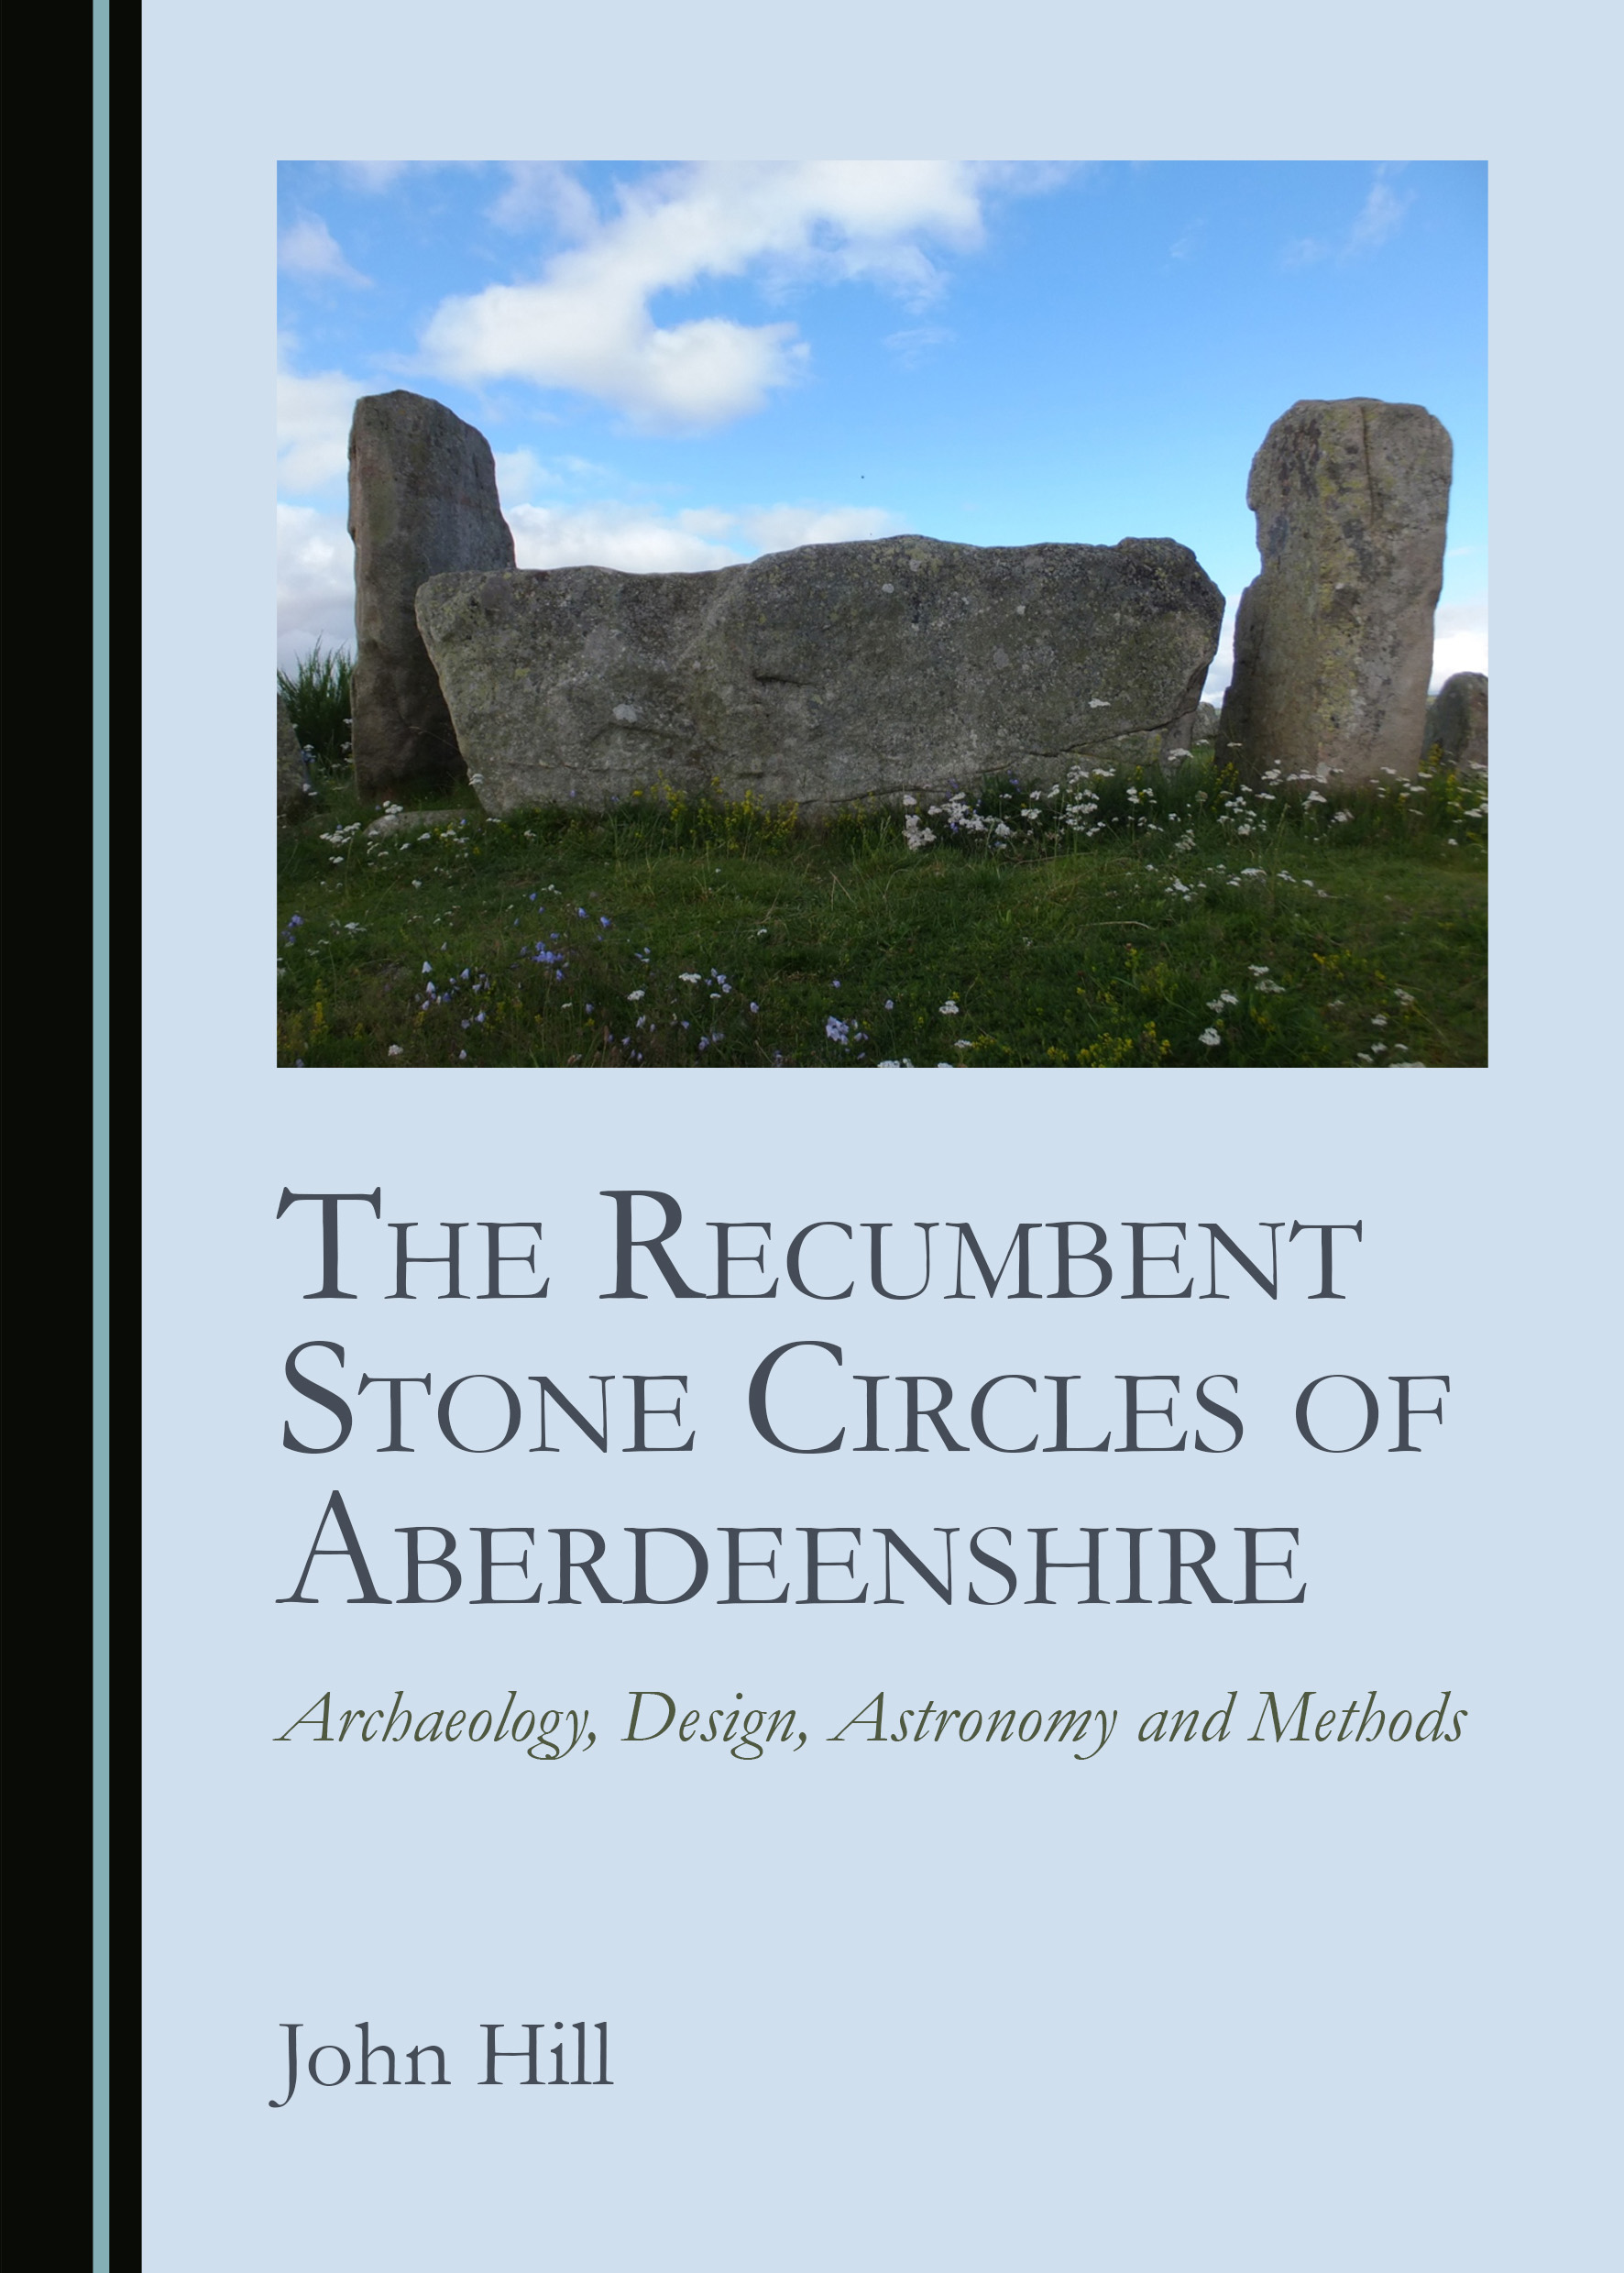 The Recumbent Stone Circles of Aberdeenshire: Archaeology, Design, Astronomy and Methods